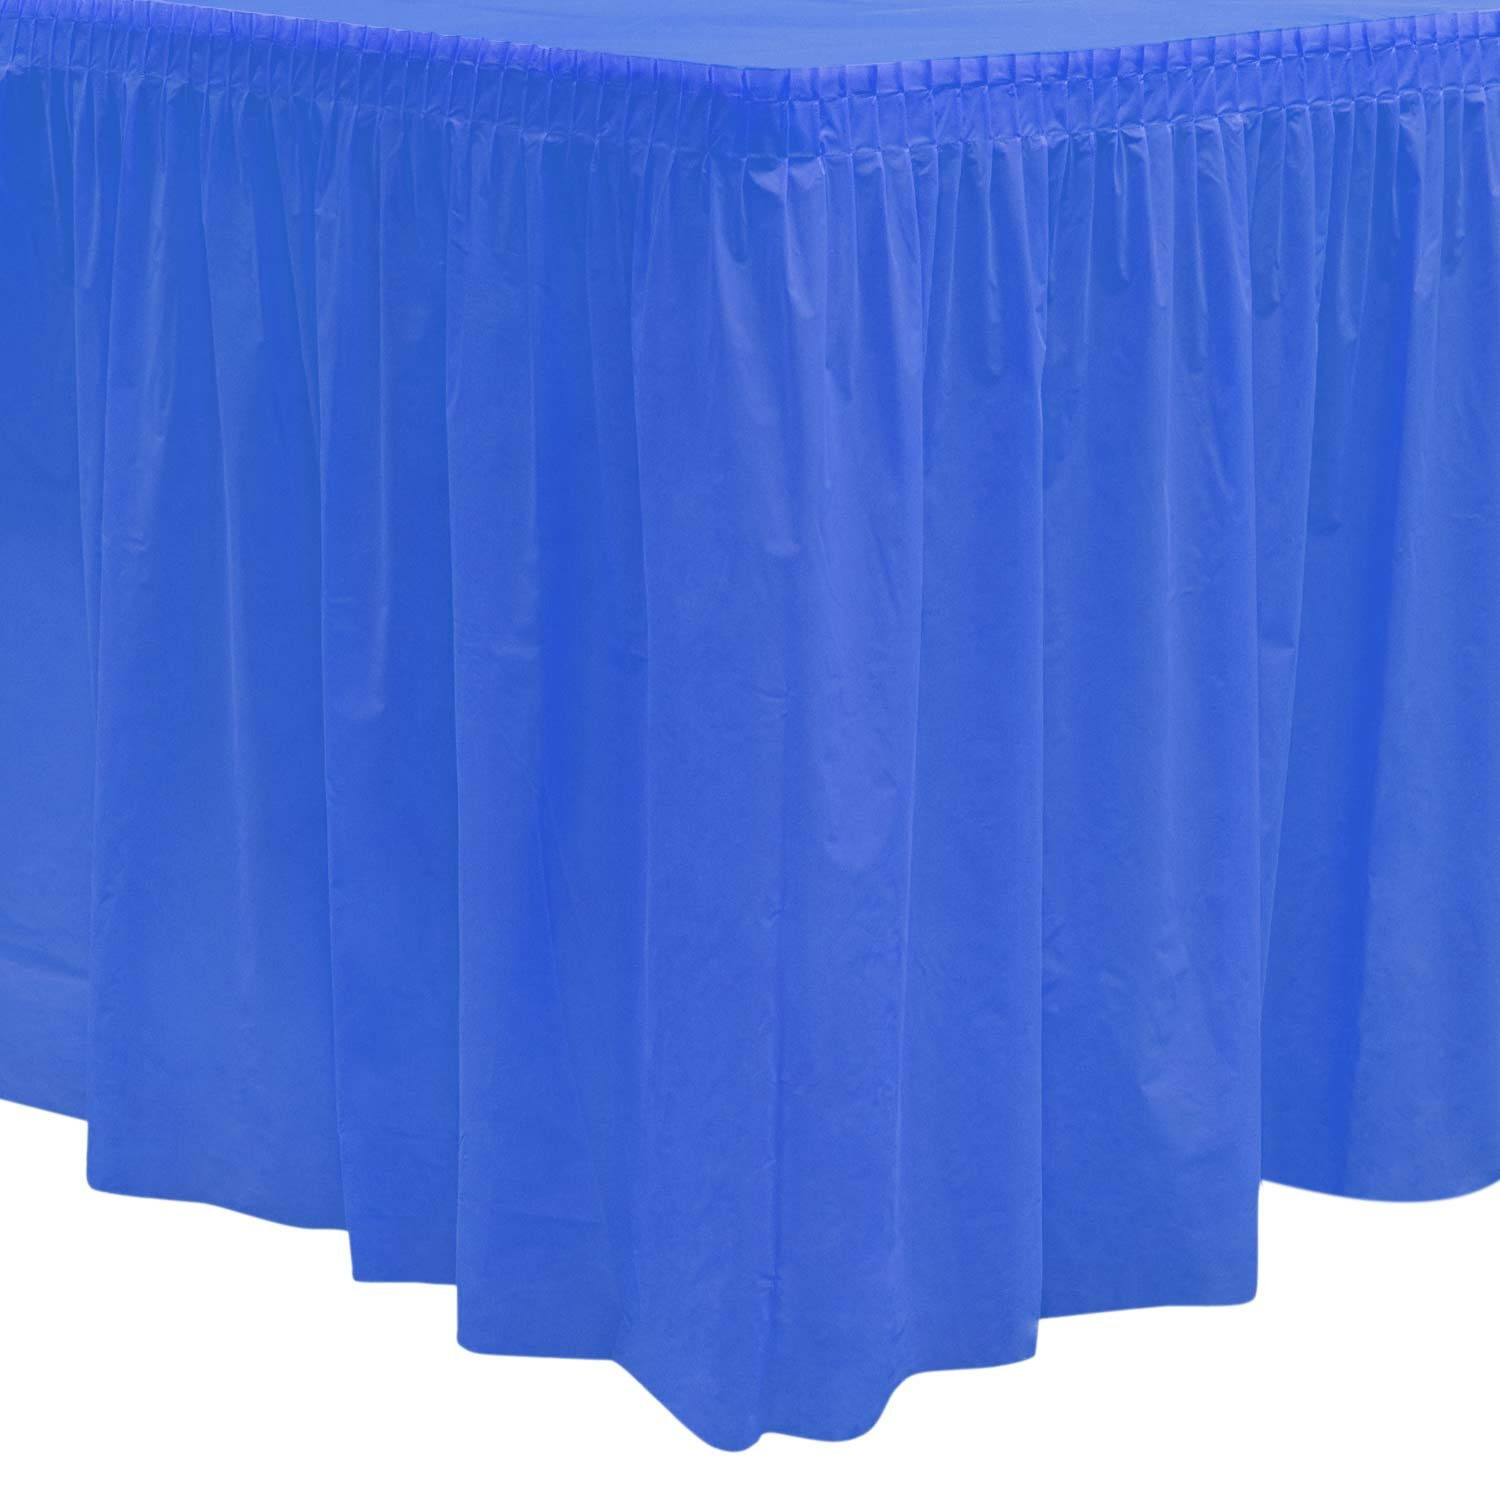 Party Essentials Heavy Duty Plastic Table Skirt, 29'' x 14', Royal Blue